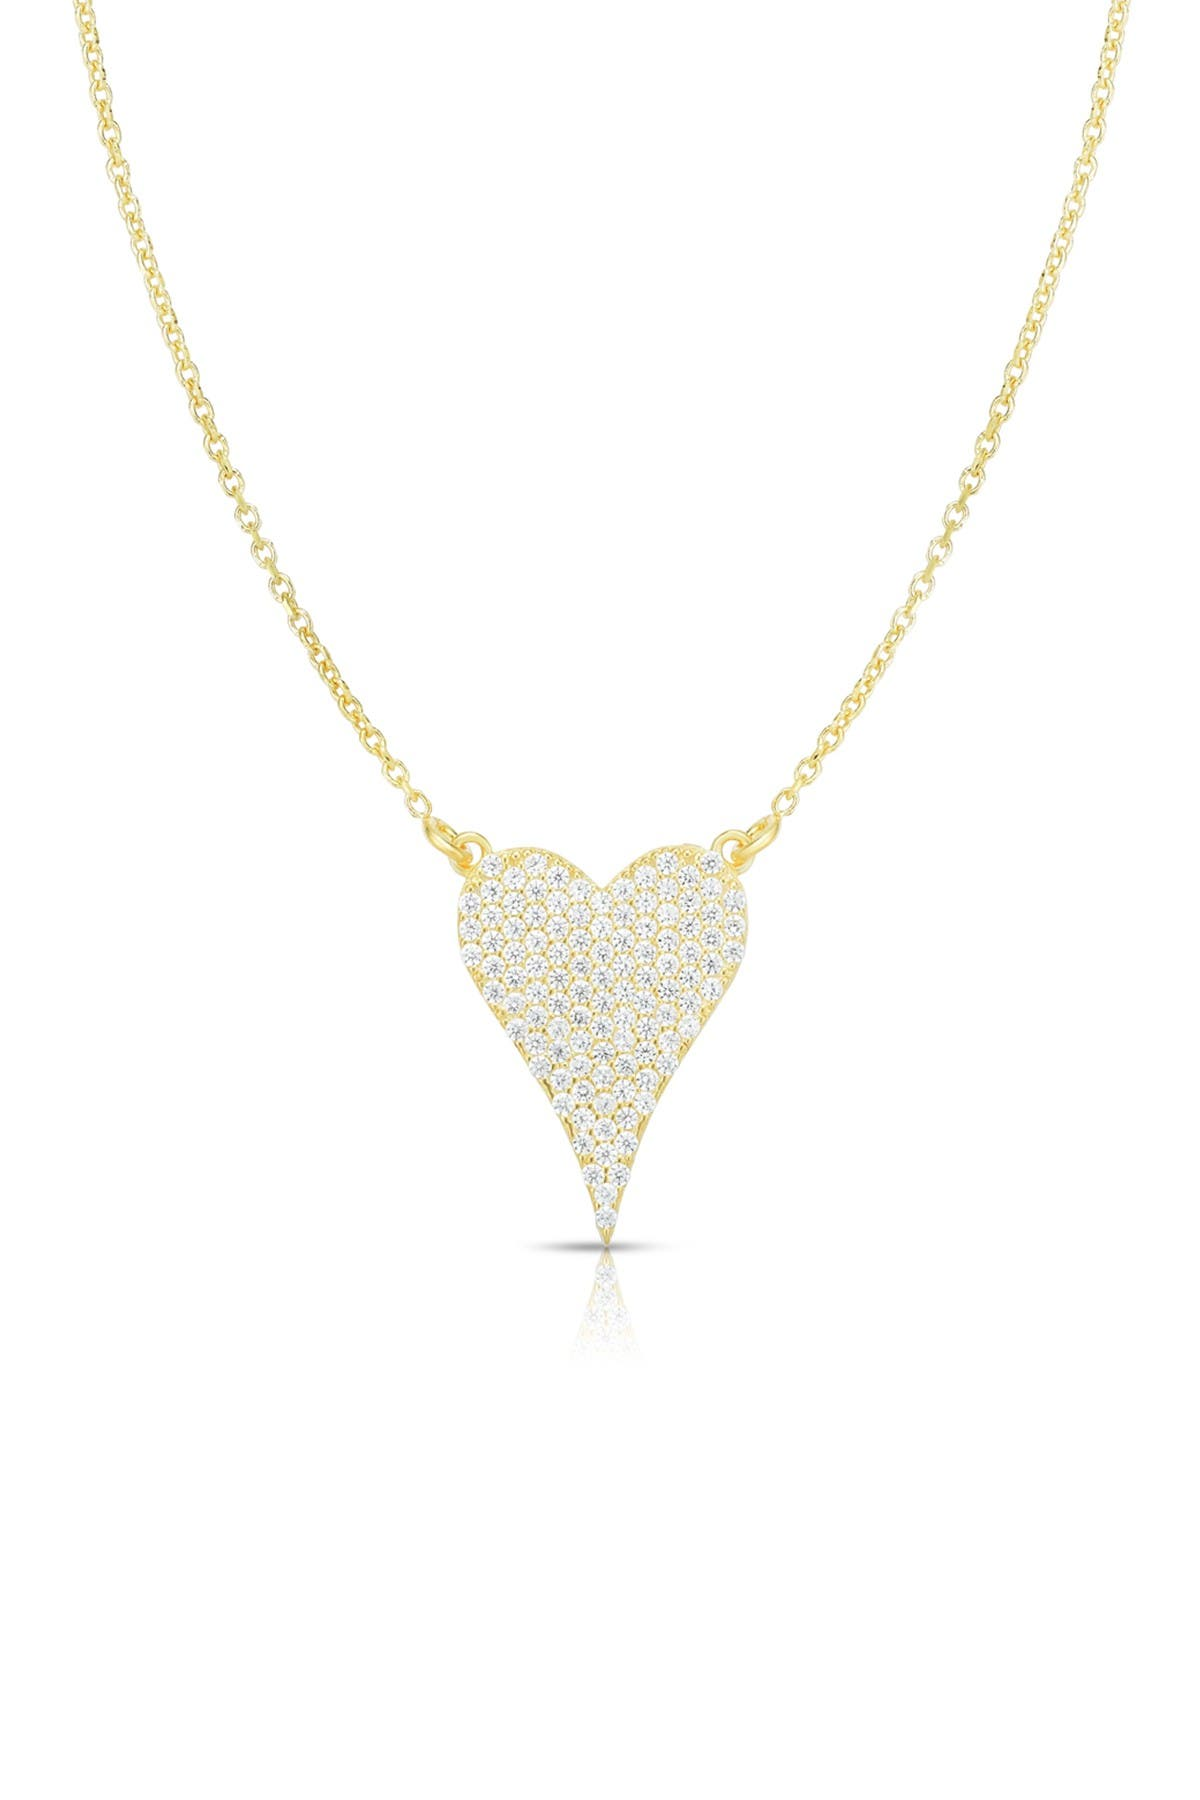 Image of Sphera Milano 14K Yellow Gold Plated Sterling Silver Pave CZ Heart Pendant Necklace